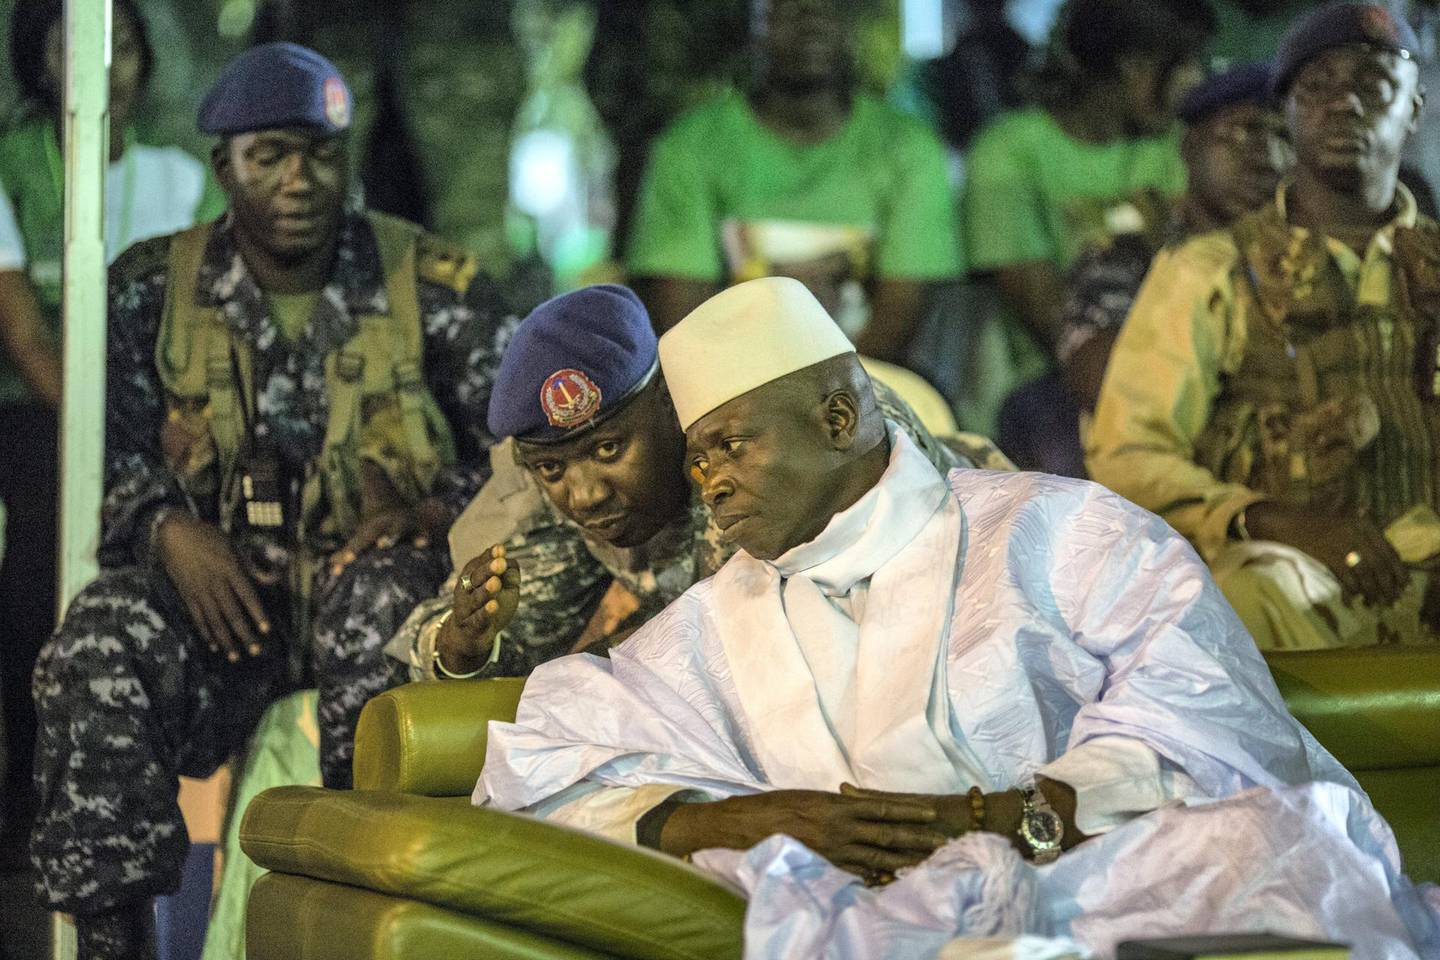 """Incumbent Gambian President Yahya Jammeh listens to one of his aides in Banjul on November 29, 2016, during the closing rally of the electoral campaign of the Alliance for Patriotic Reorientation and Construction (APRC). - More than 880,000 voters are expected to cast their ballots when the west African country goes to the polls on December 1, 2016. Jammeh has won four elections with his ruling Alliance for Patriotic Reorientation and Construction, following a 2002 constitutional amendment lifting term limits. Rights bodies and media watchdogs including Reporters Without Borders (RSF) accuse Jammeh of cultivating a """"pervasive climate of fear"""" and of crushing dissent against his regime, one cause of the mass exodus of Gambian youths to Europe. (Photo by MARCO LONGARI / AFP)"""